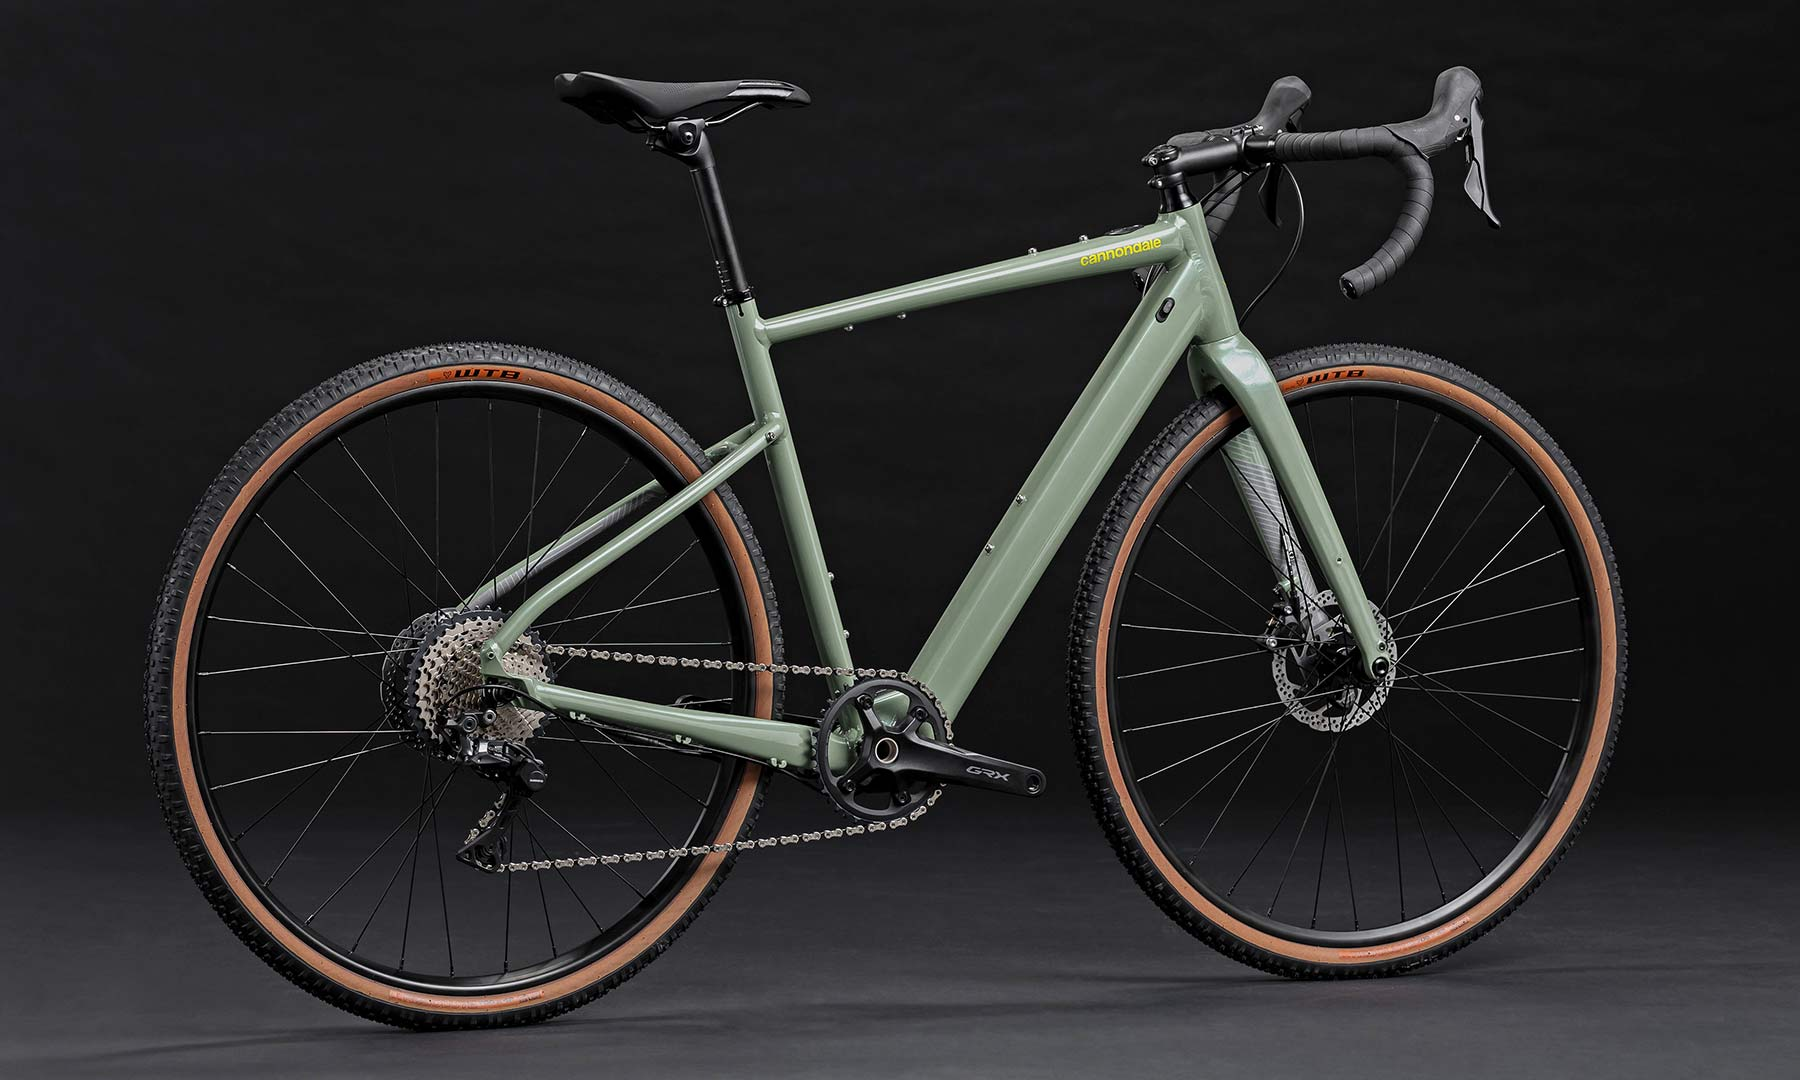 Cannondale Topstone Neo SL lightweight affordable alloy gravel e-bike,angled